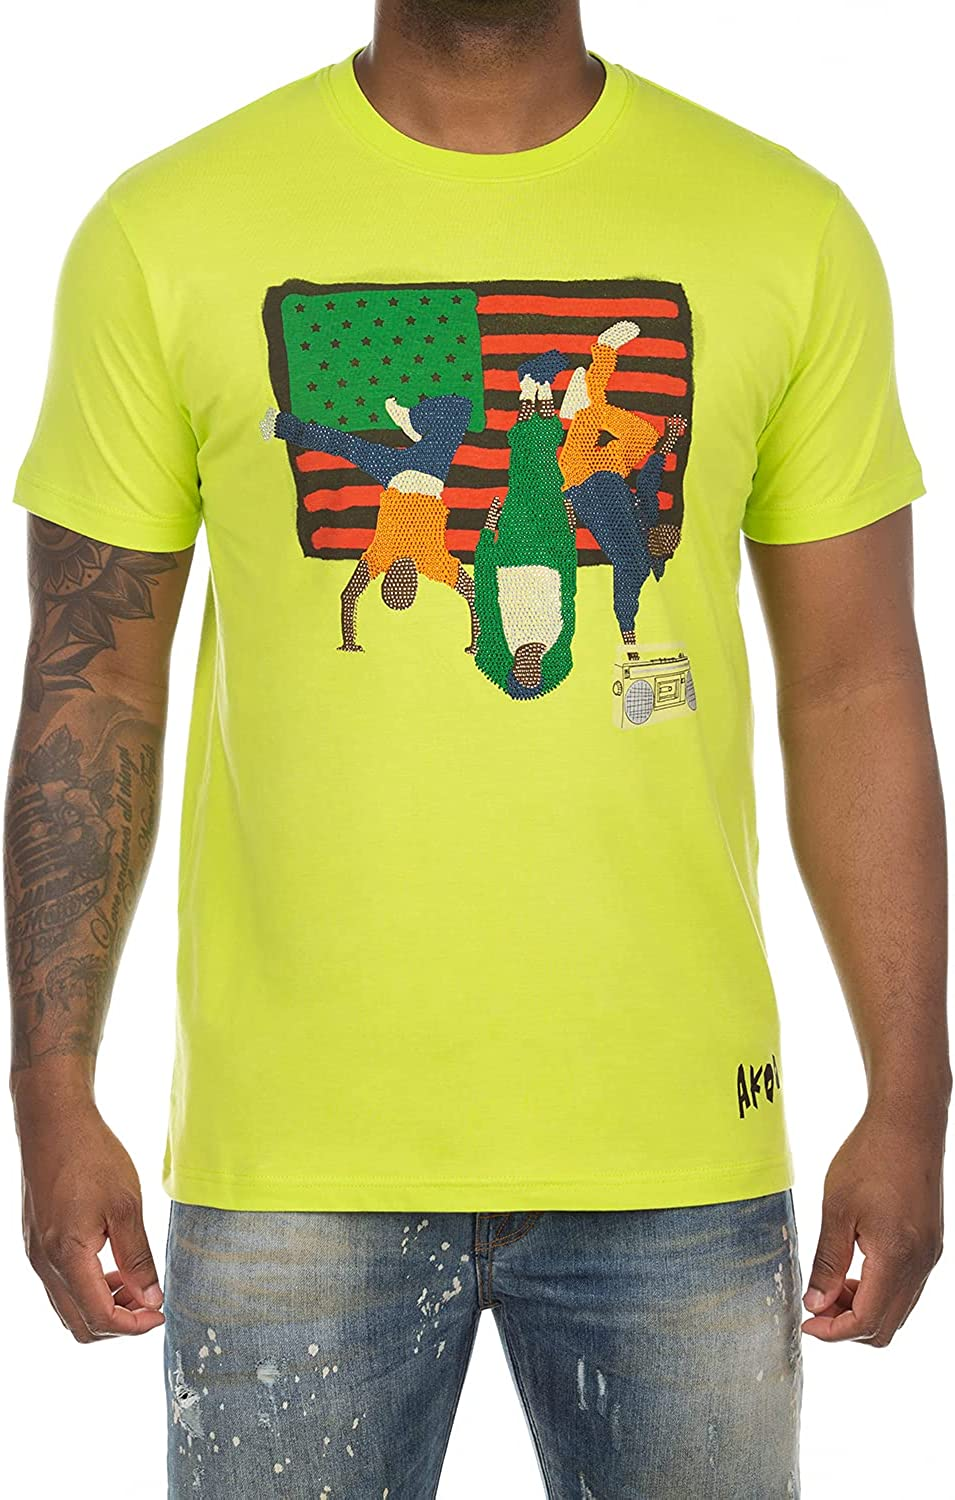 Akoo 上等 Clothing Men's T-Shirts Short Sleeve 市場 Fas for Cotton Stylish